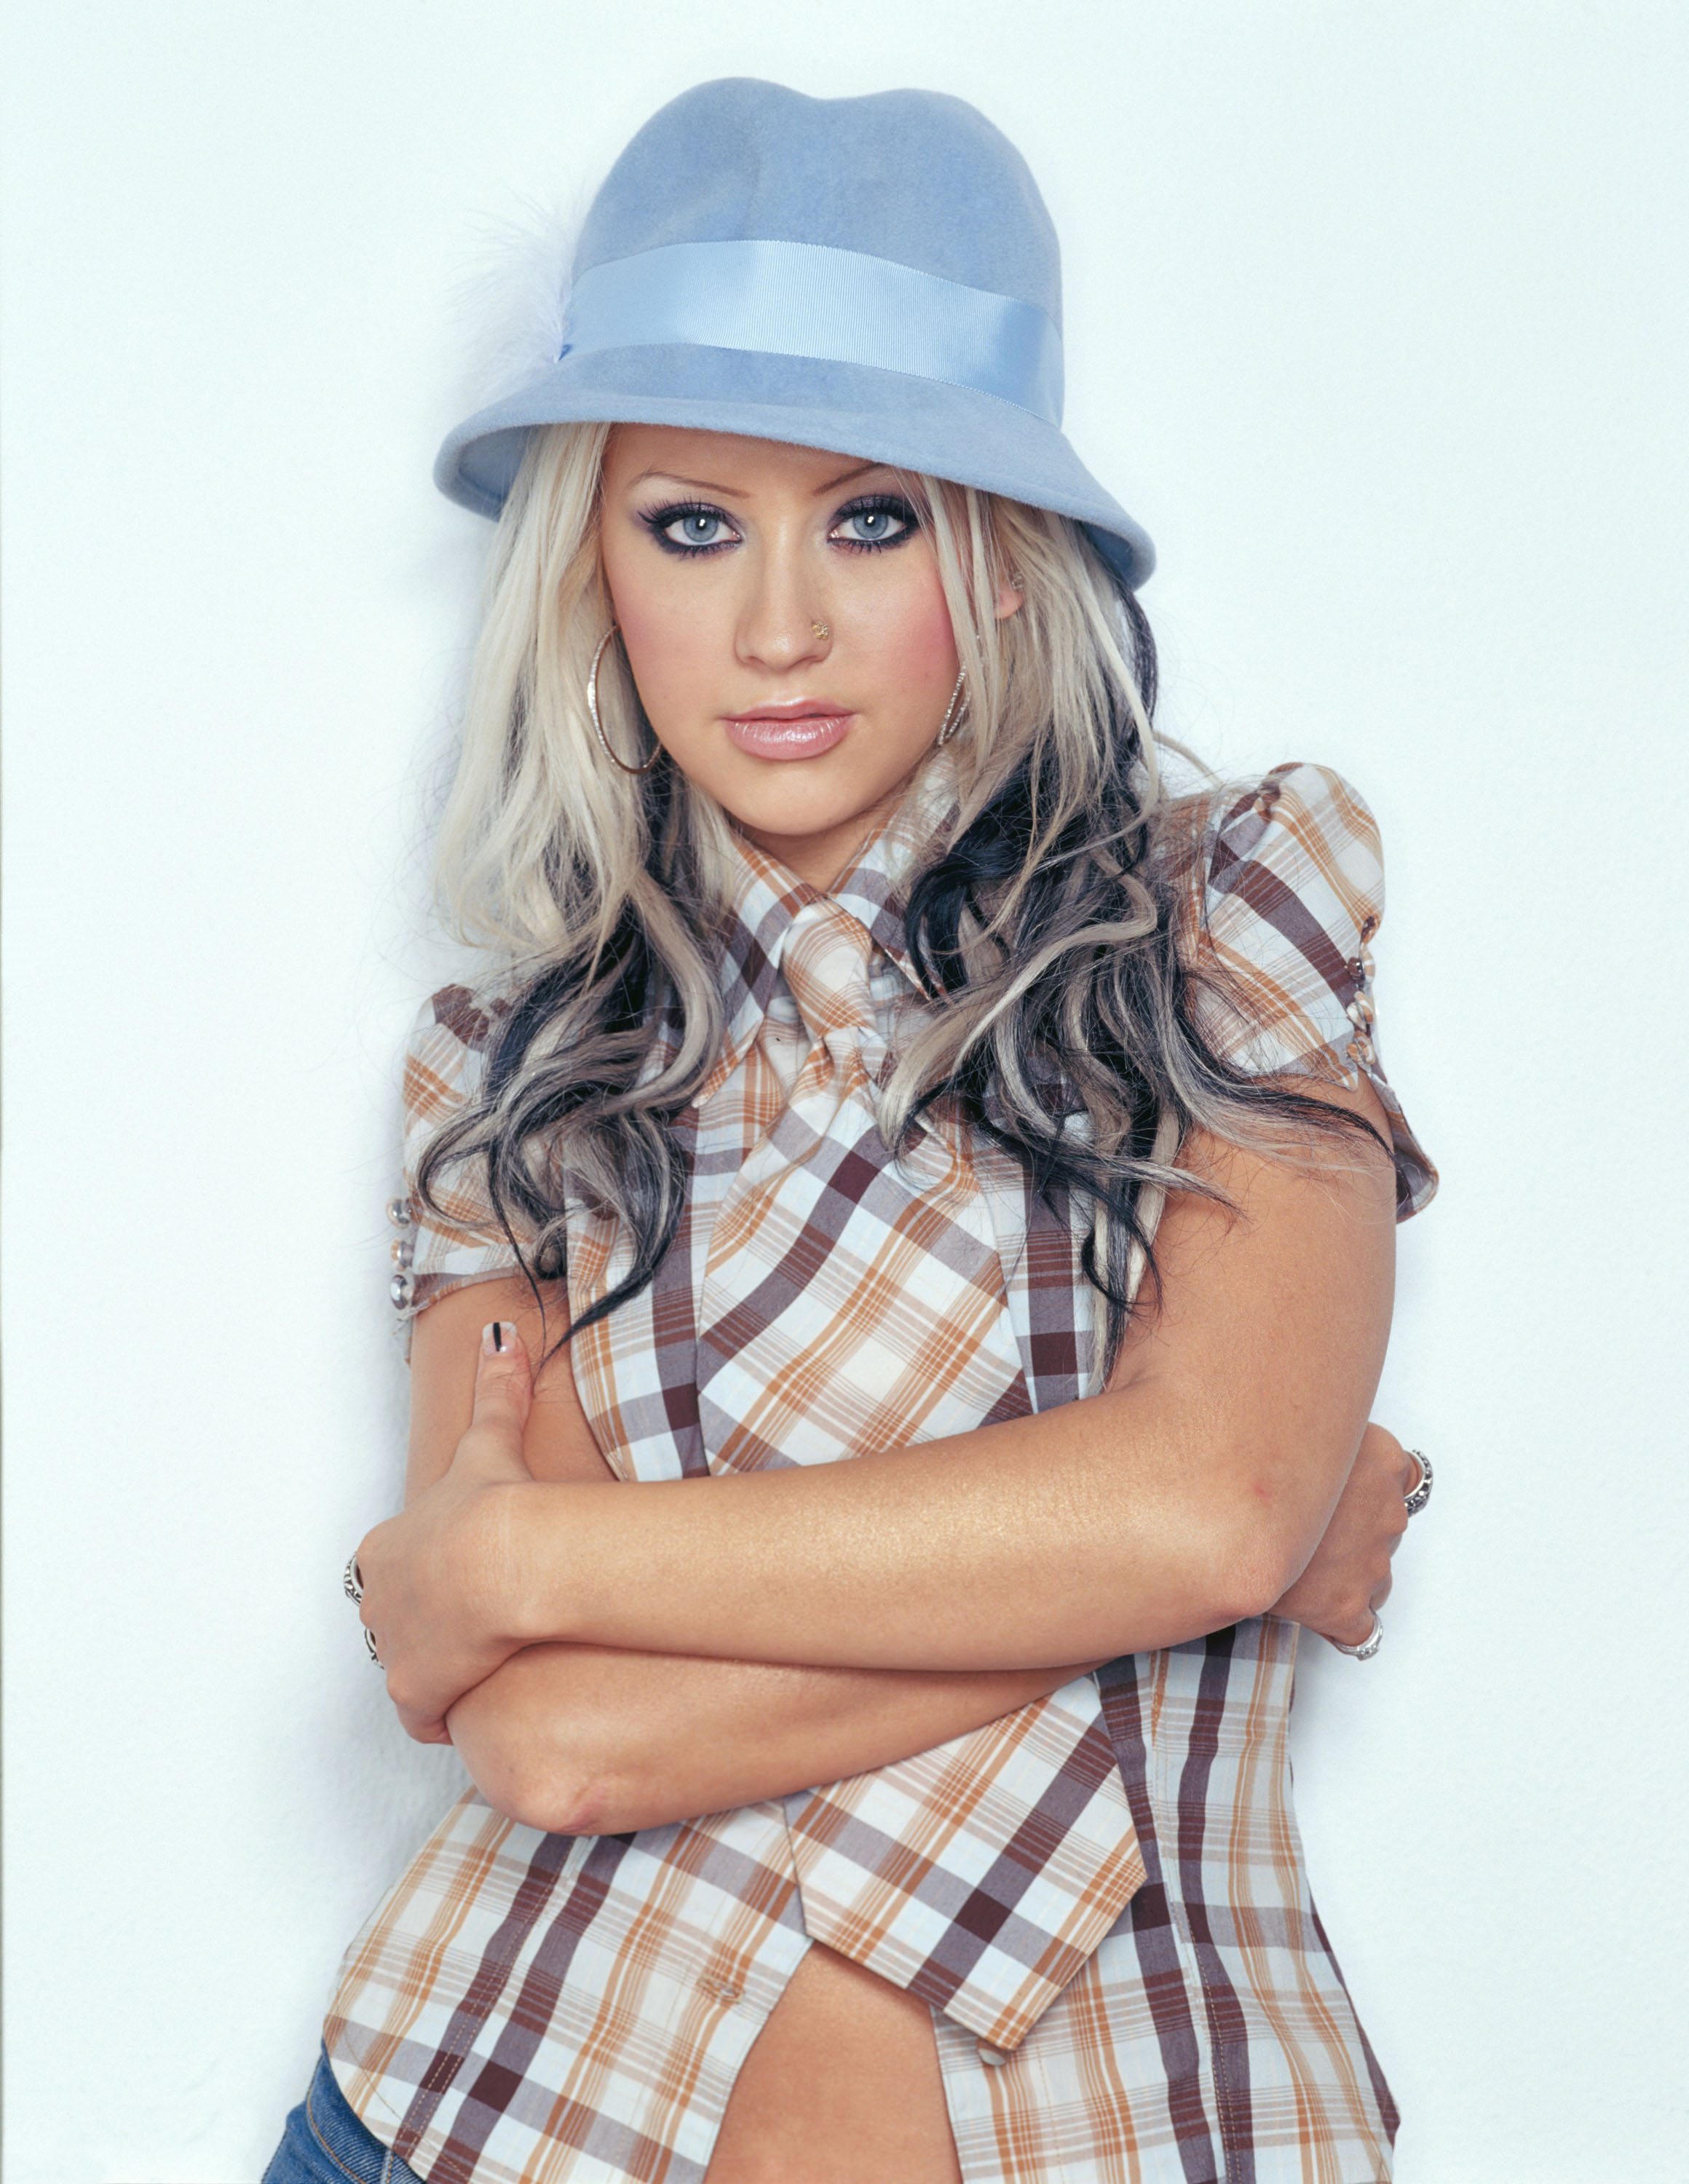 68808_Christina_Aguilera-015321_US_Weekly_-_2003_122_1047lo.jpg